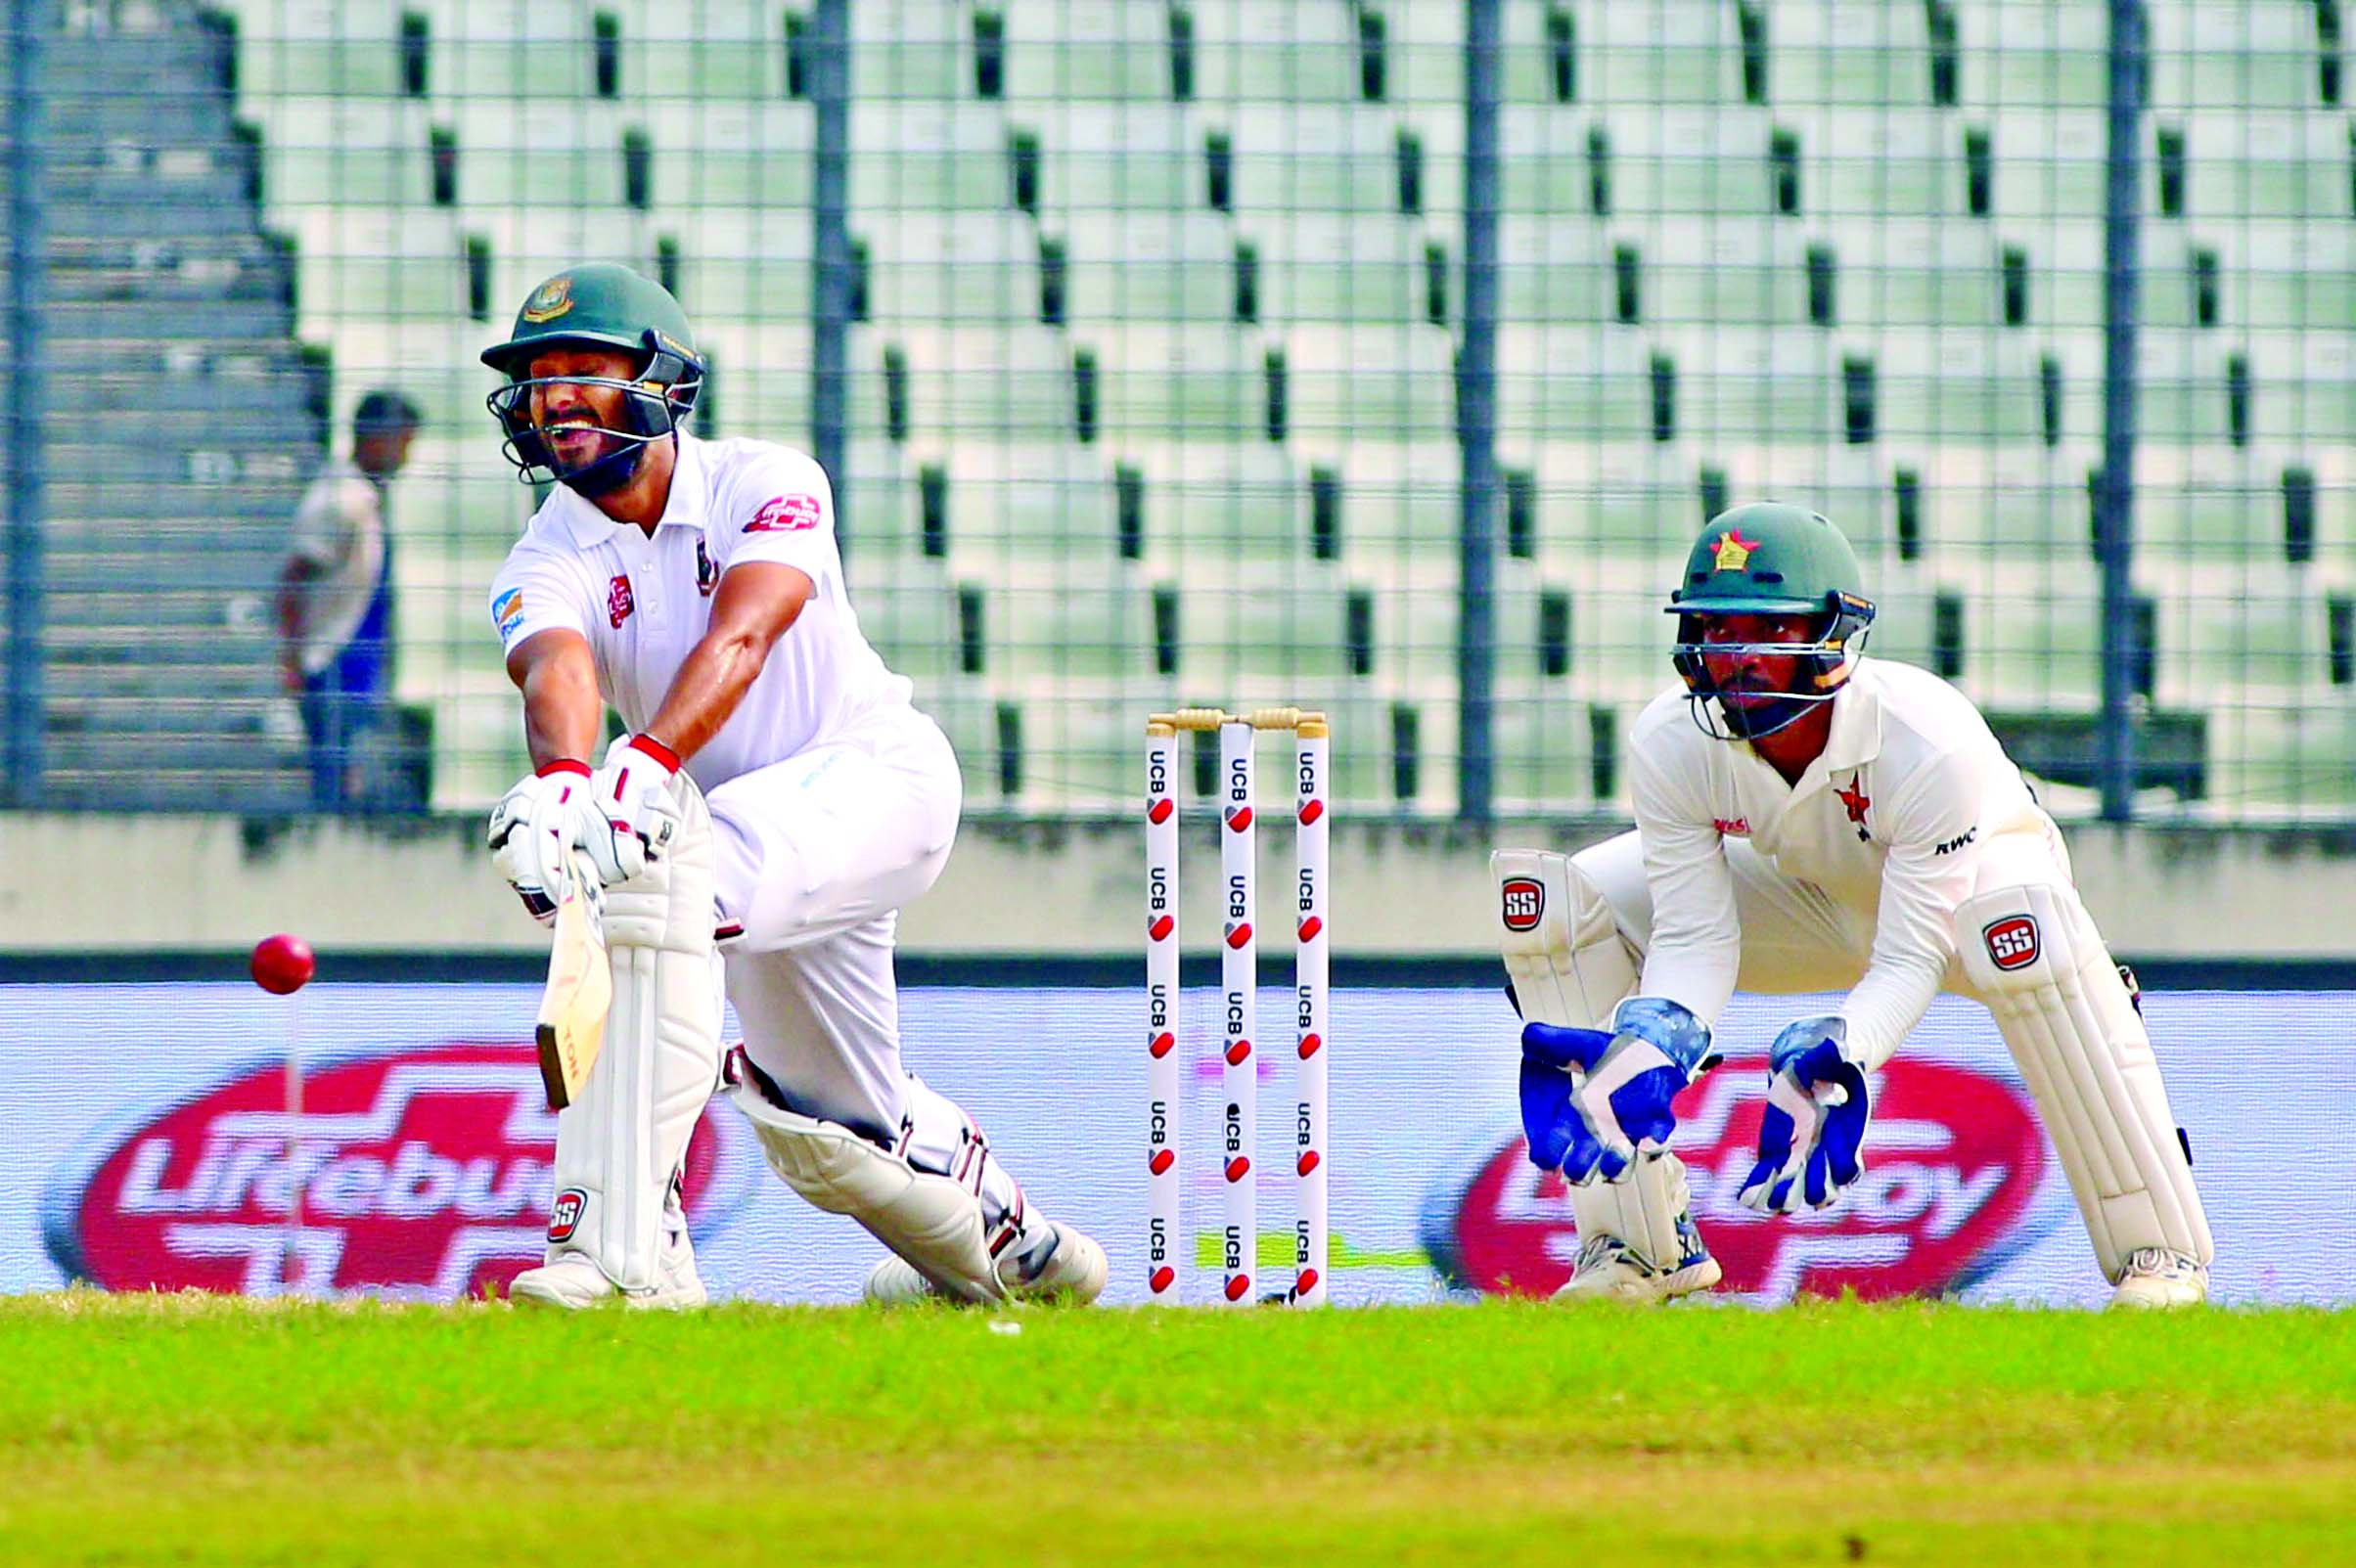 Mohammad Mithun (left) of Bangladesh plays a shot while wicketkeeper Regis Chakabva of Zimbabwe looks on during the fourth day play of the second Test between Bangladesh and Zimbabwe at the Sher-e-Bangla National Cricket Stadium in the city's Mirpur on Wednesday.